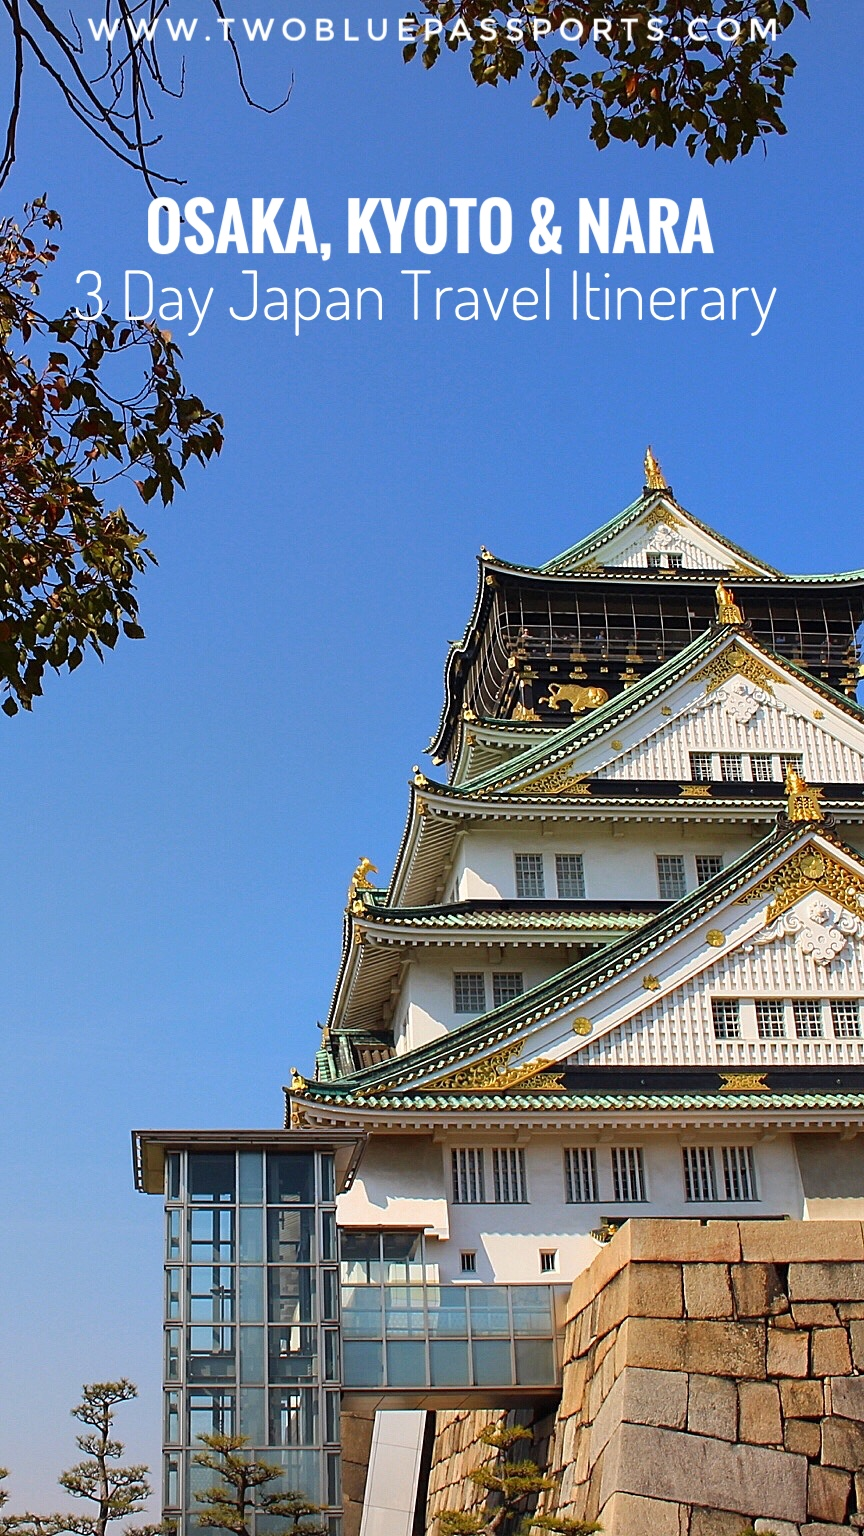 osaka-kyoto-nara-3-day-japan-itinerary.jpg